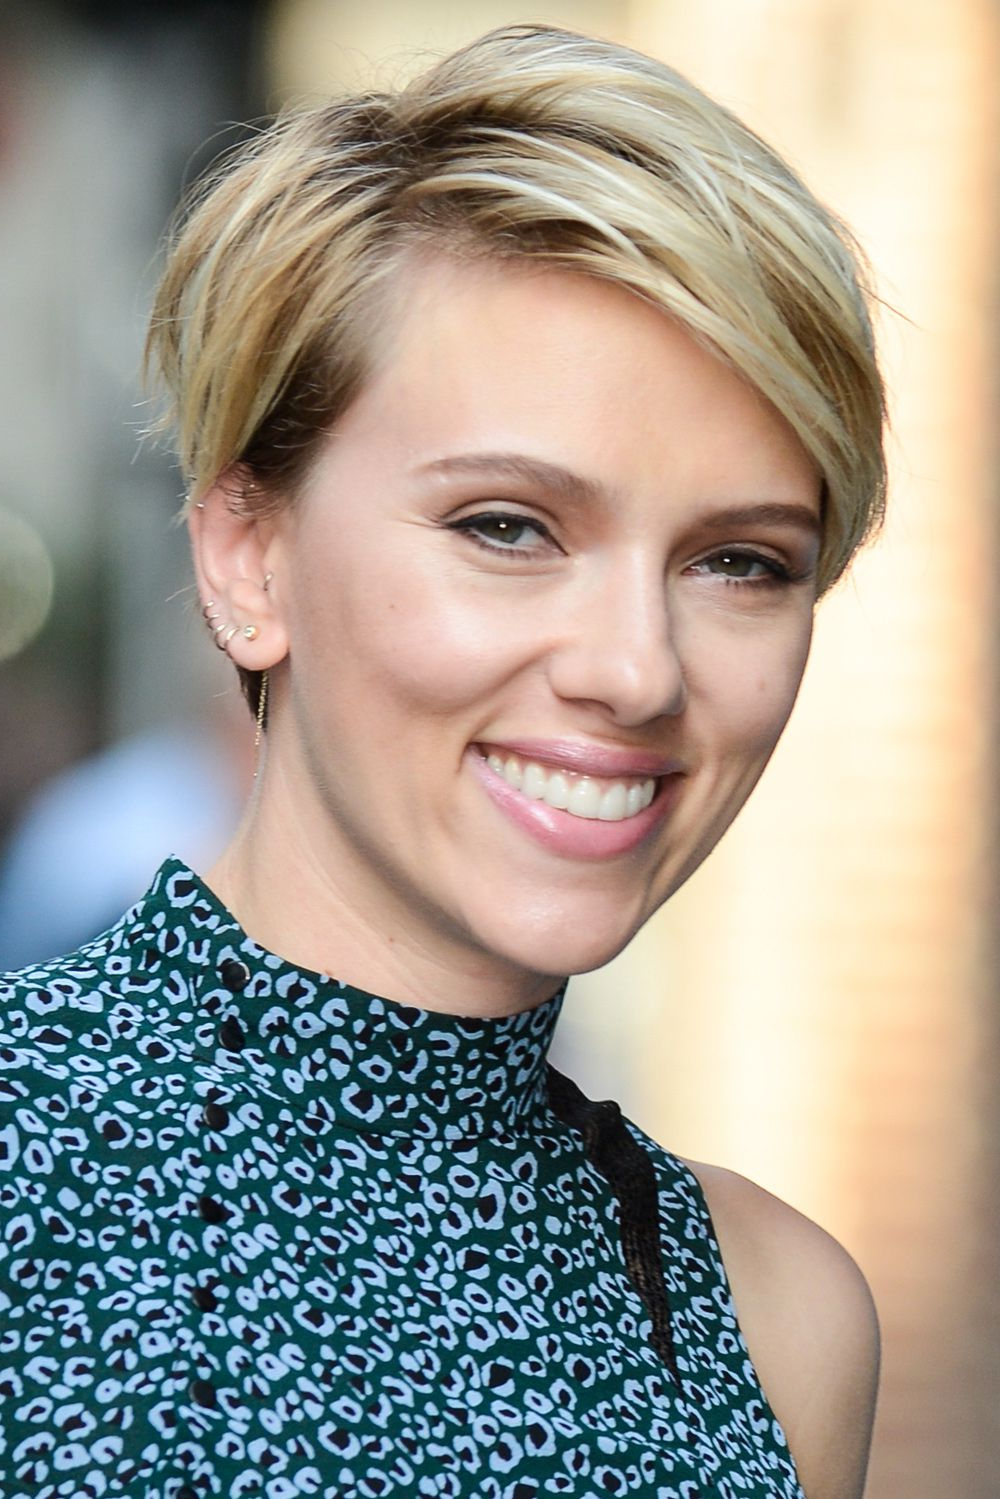 6 Super Popular Short Haircuts You Need To Try In 2018 In 2018 Pertaining To Scarlett Johansson Short Hairstyles (Gallery 8 of 25)